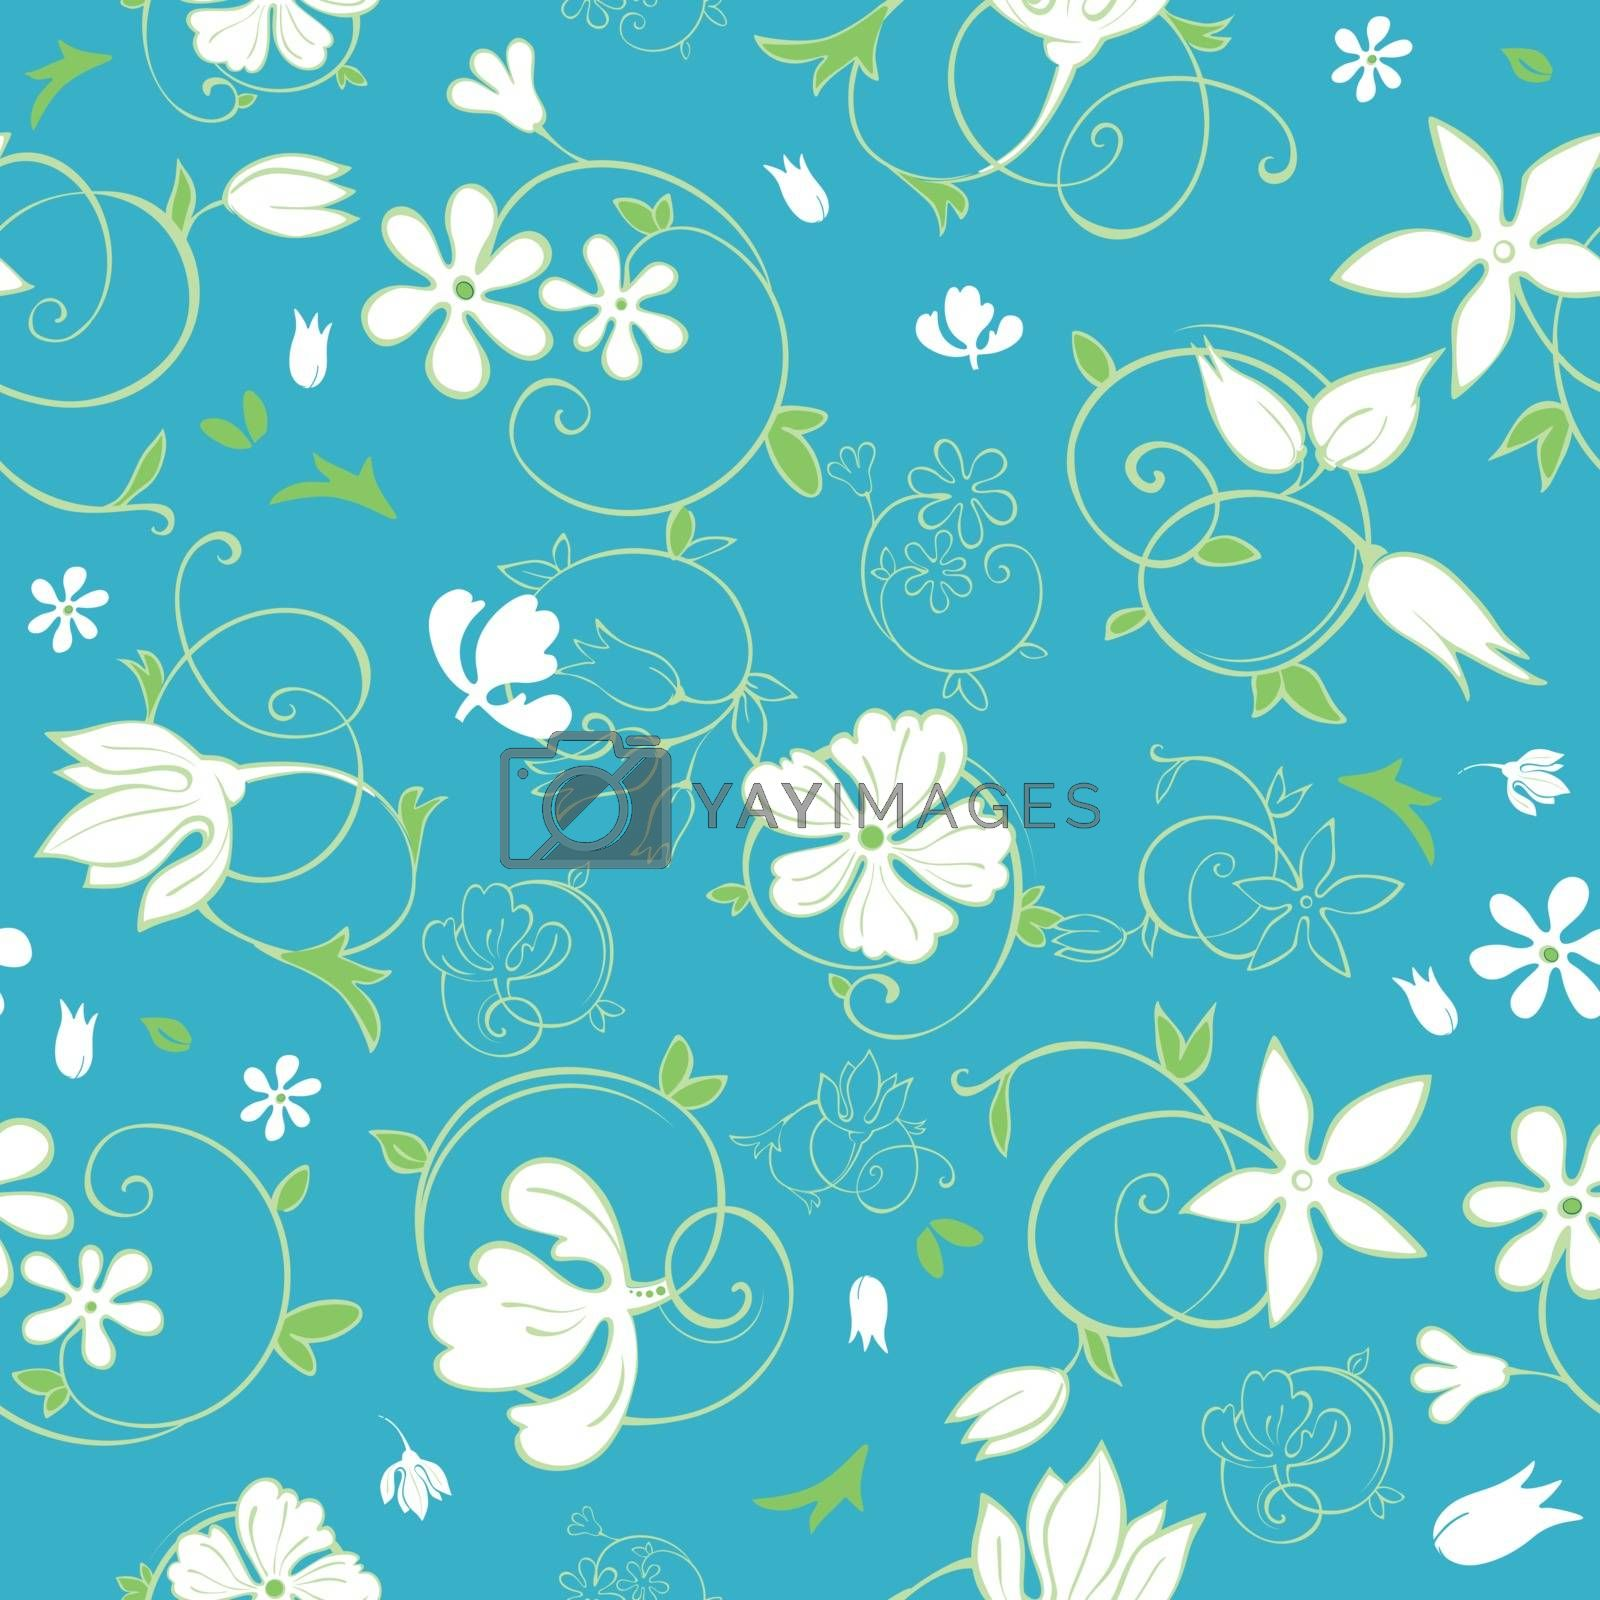 Royalty free image of Vector Blue Green White Spring Florals Seamless Pattern by Oksancia